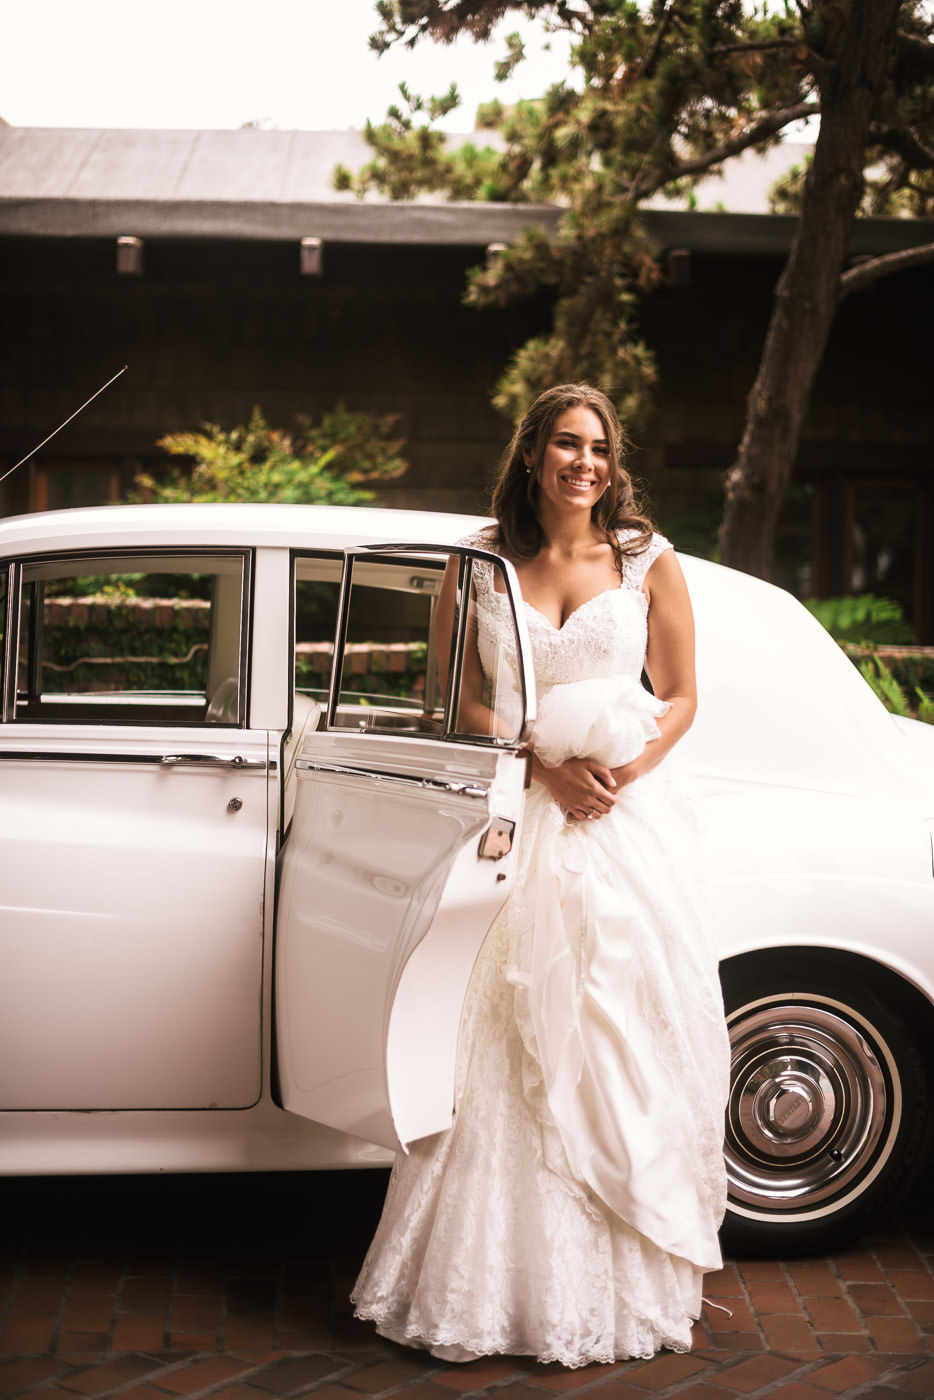 Brides leans up against the classic Rolls Royce that has arrived to take her to the wedding.